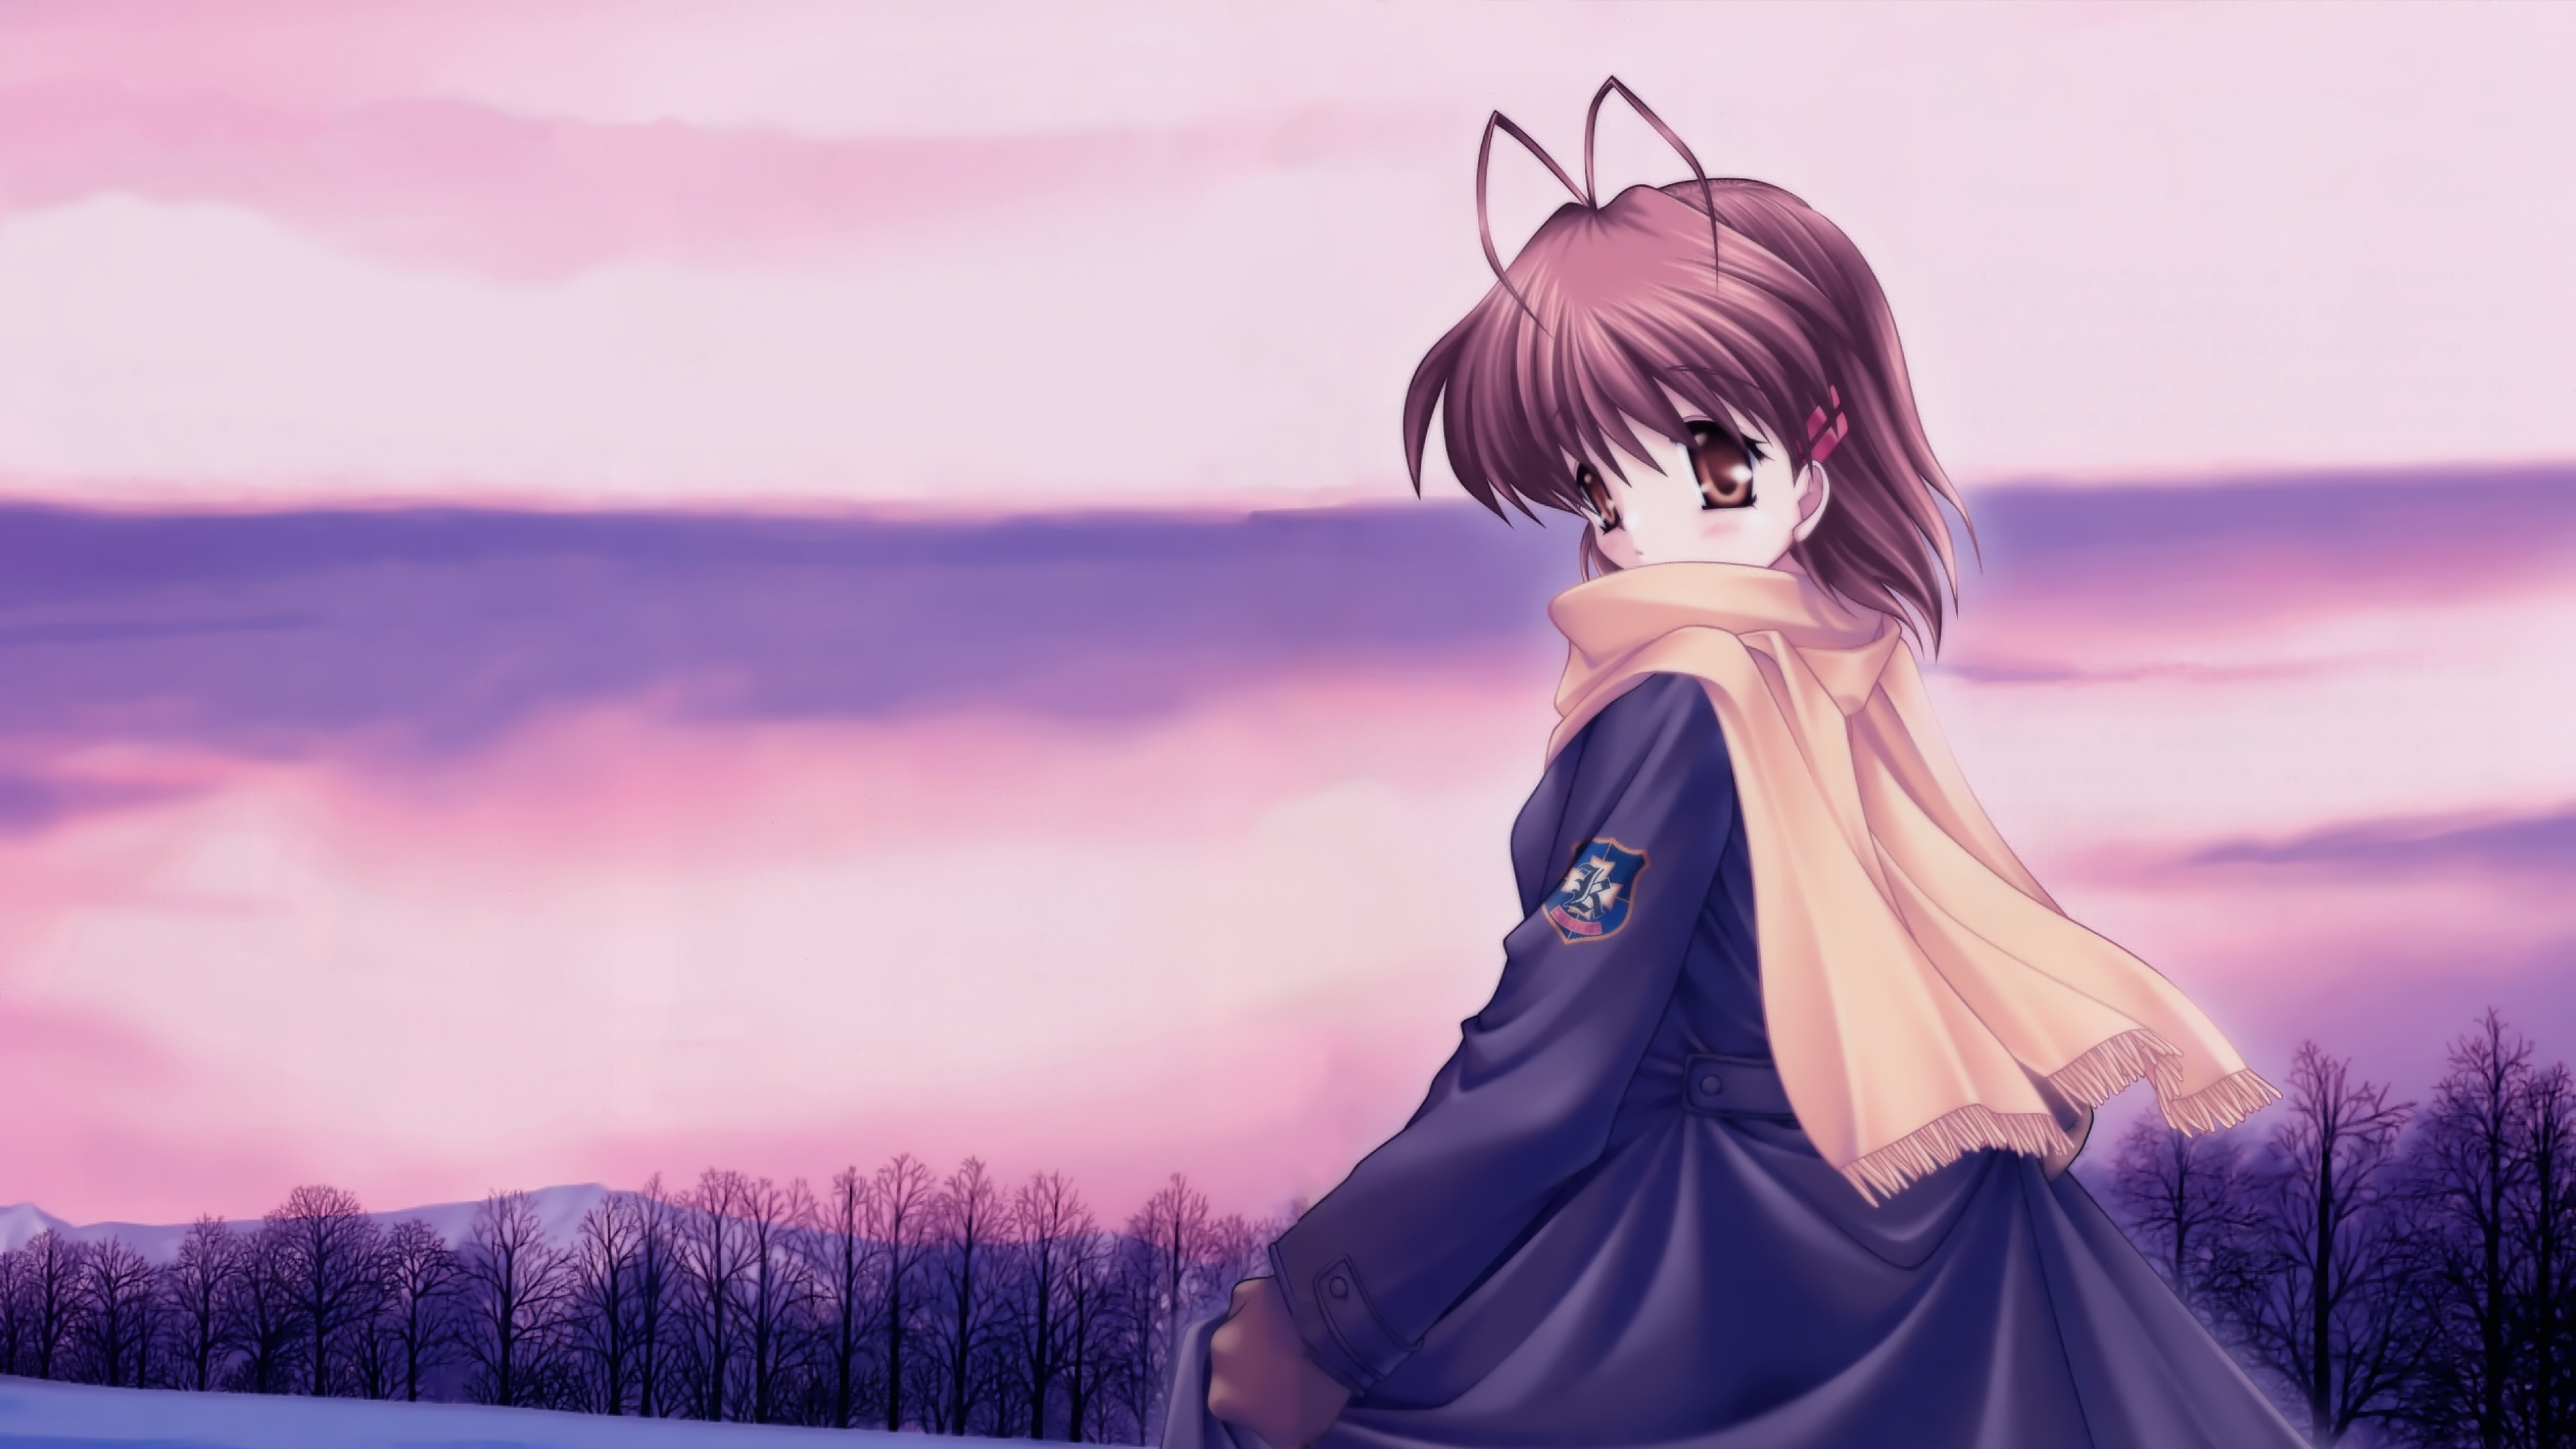 Clannad Backgrounds Download 3840x2160